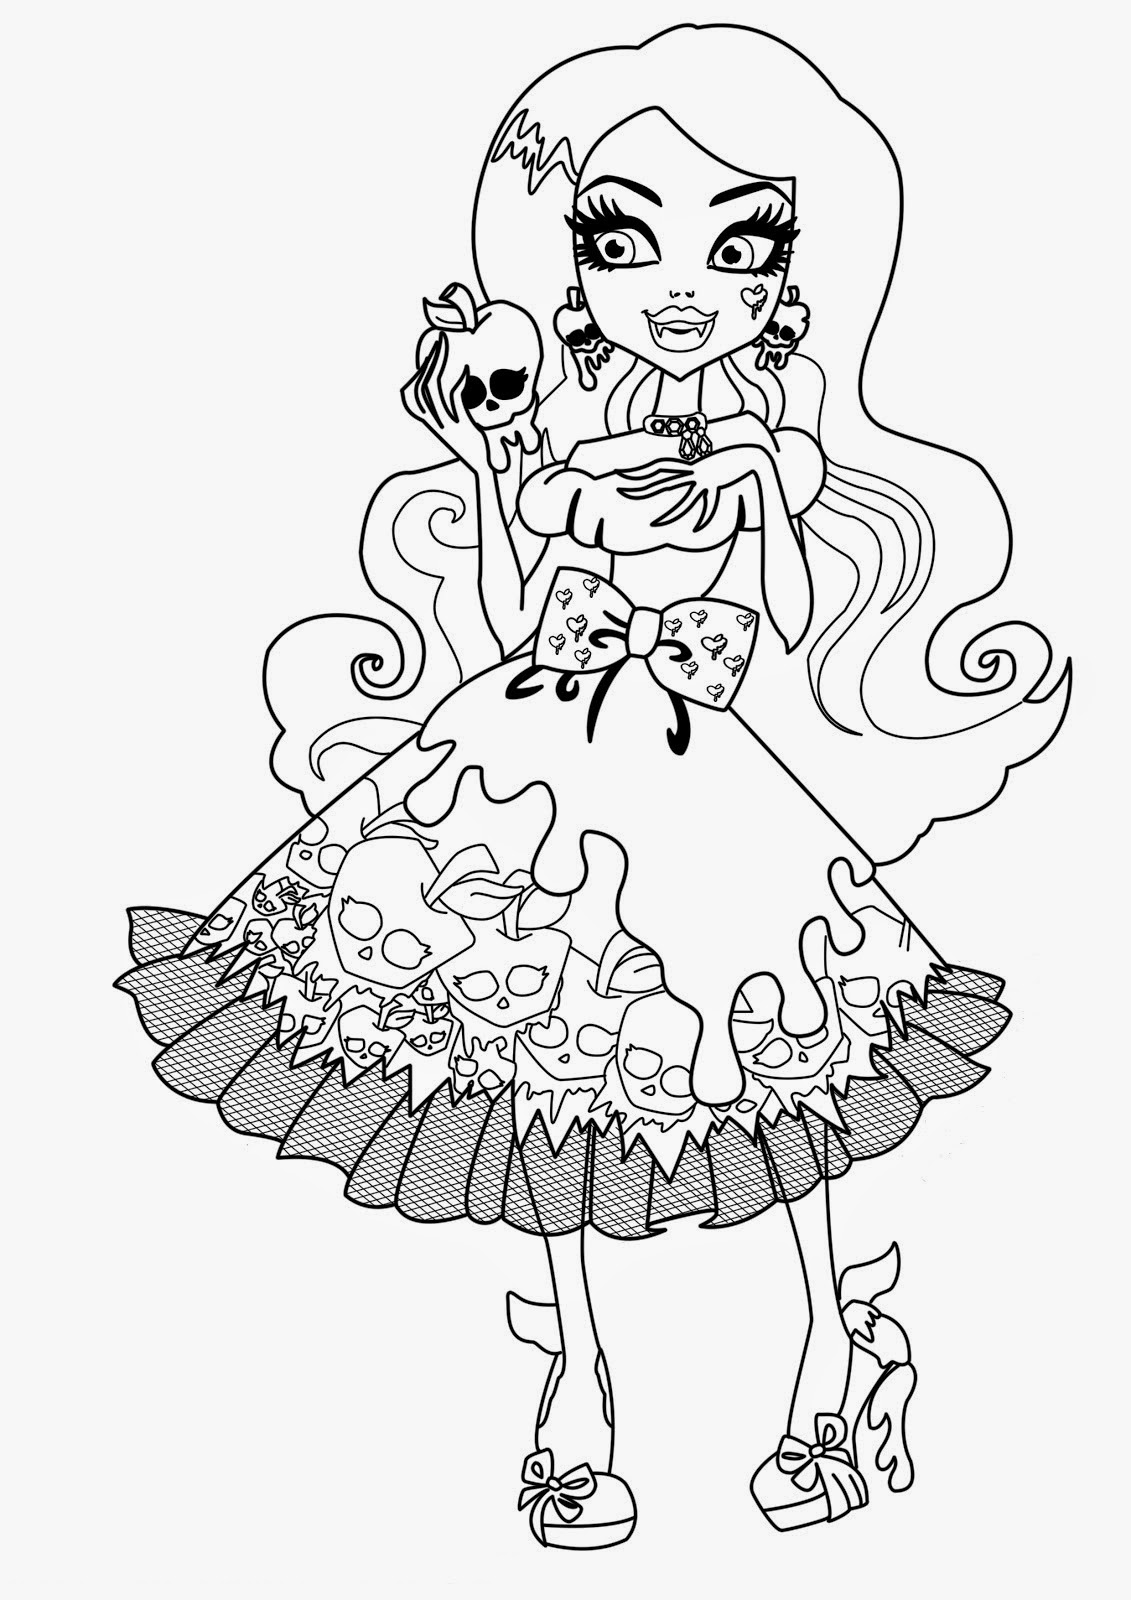 monster high coloring games coloring pages monster high coloring pages free and printable games coloring high monster